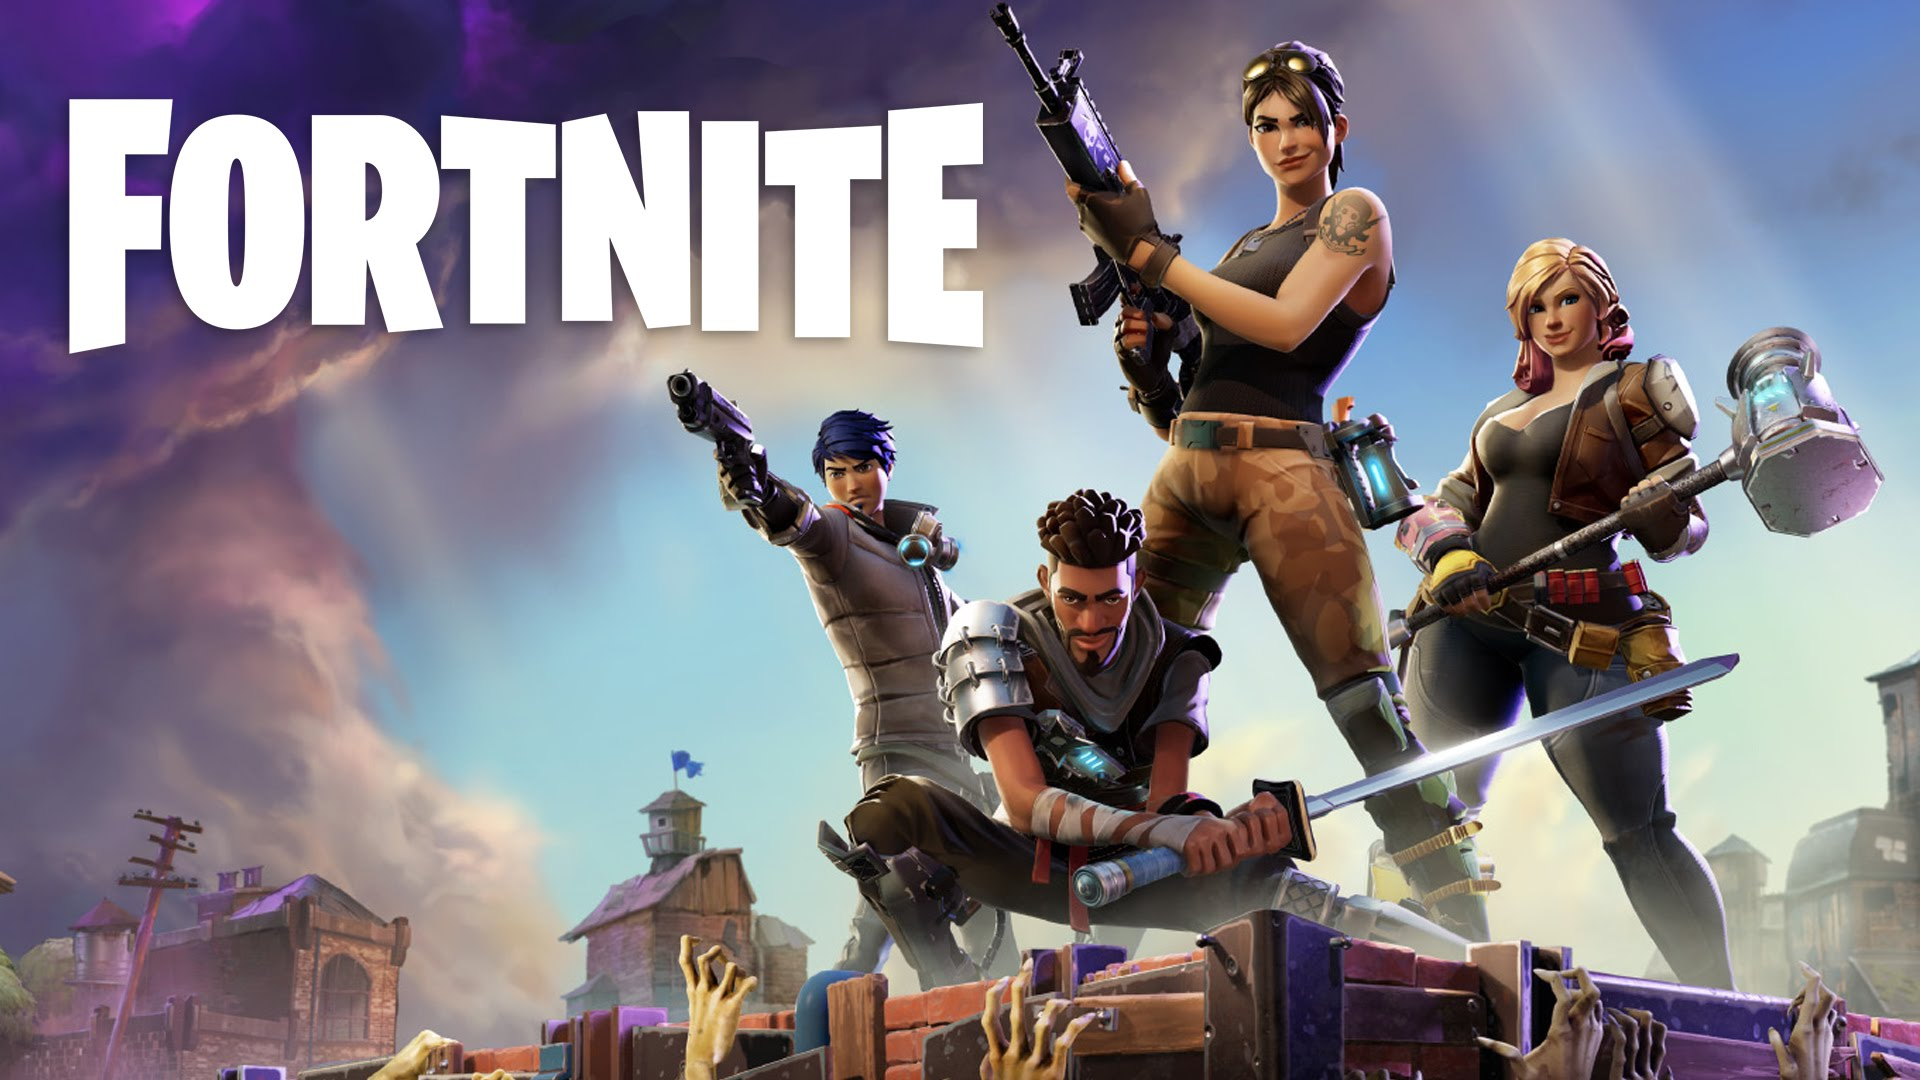 Fortnite for Android's installer left devices briefly